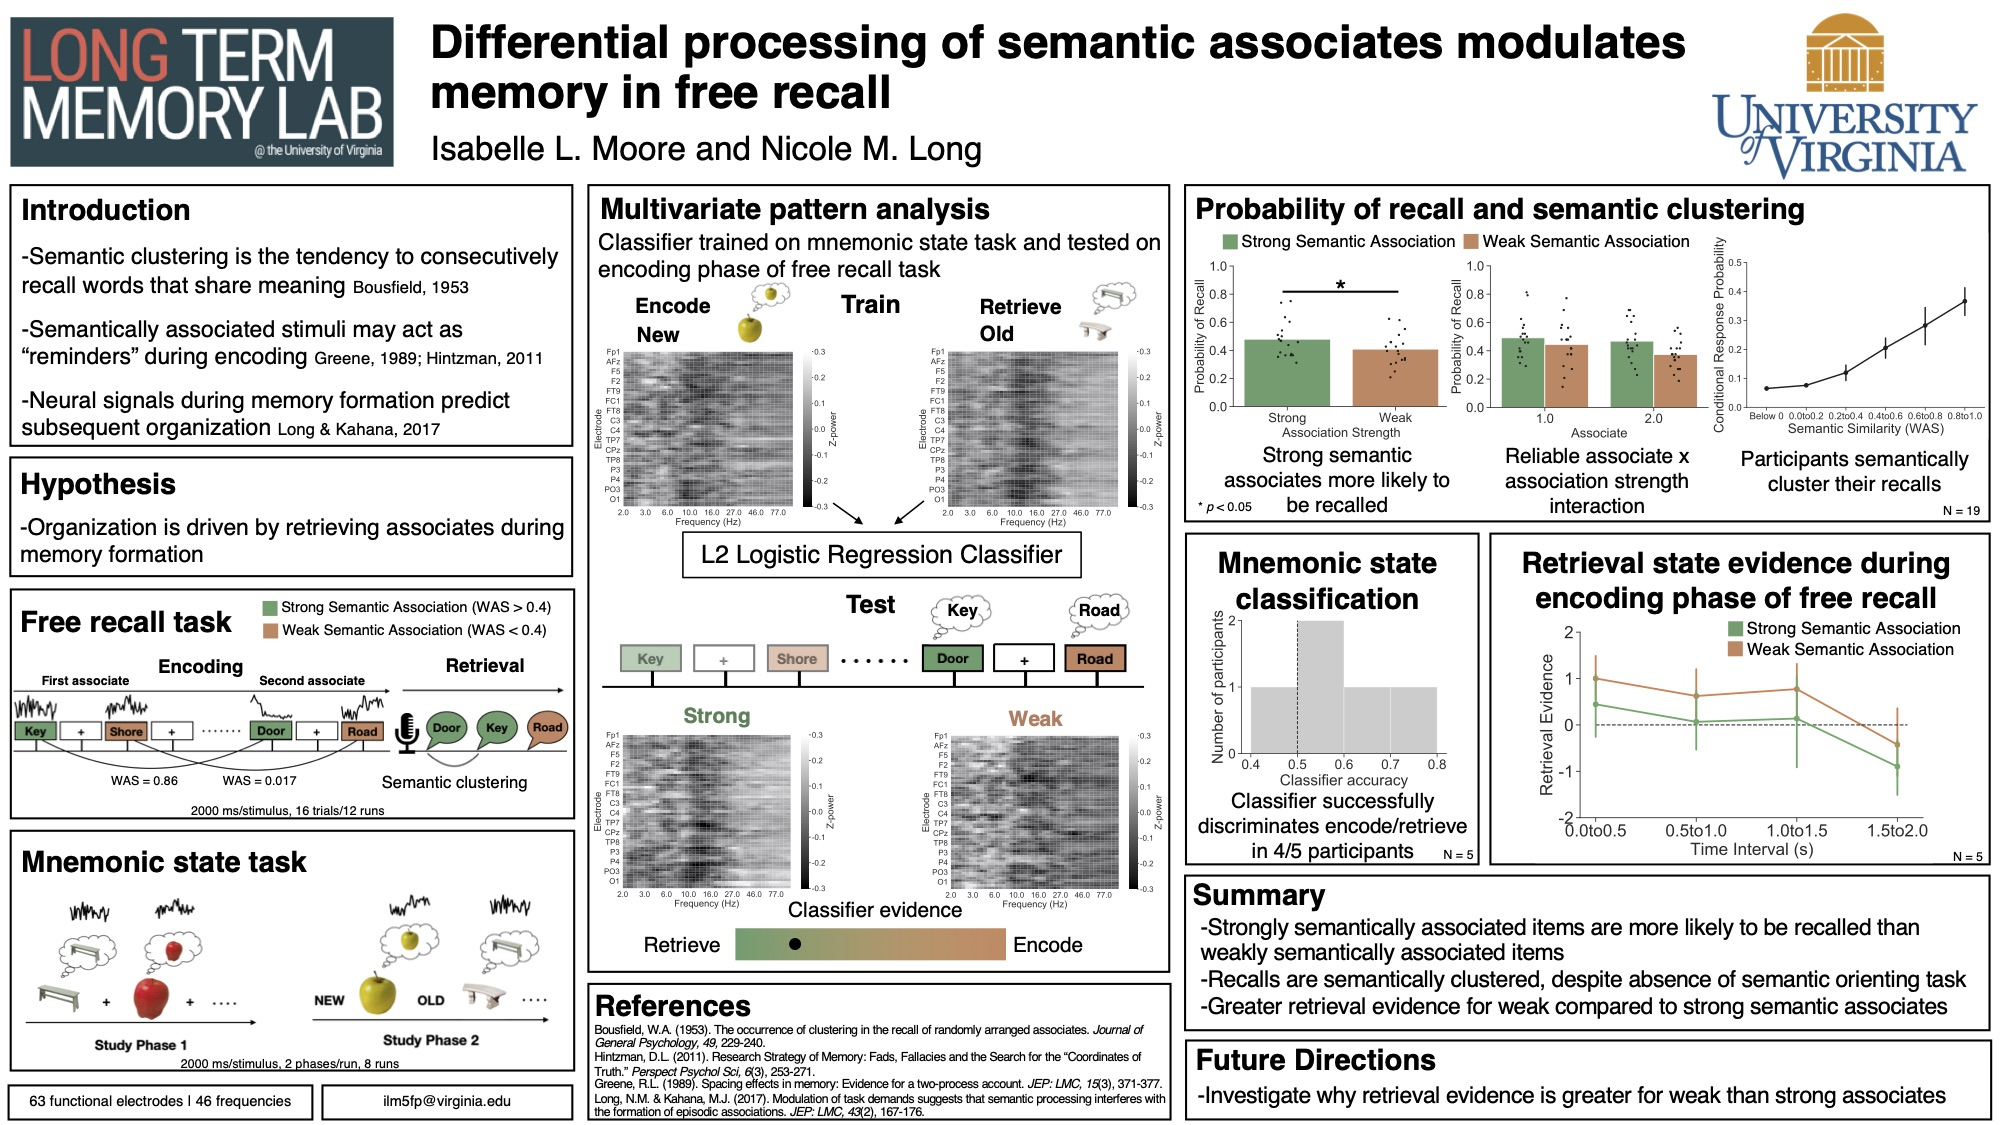 Differential processing of semantic associates modulates memory in free recall